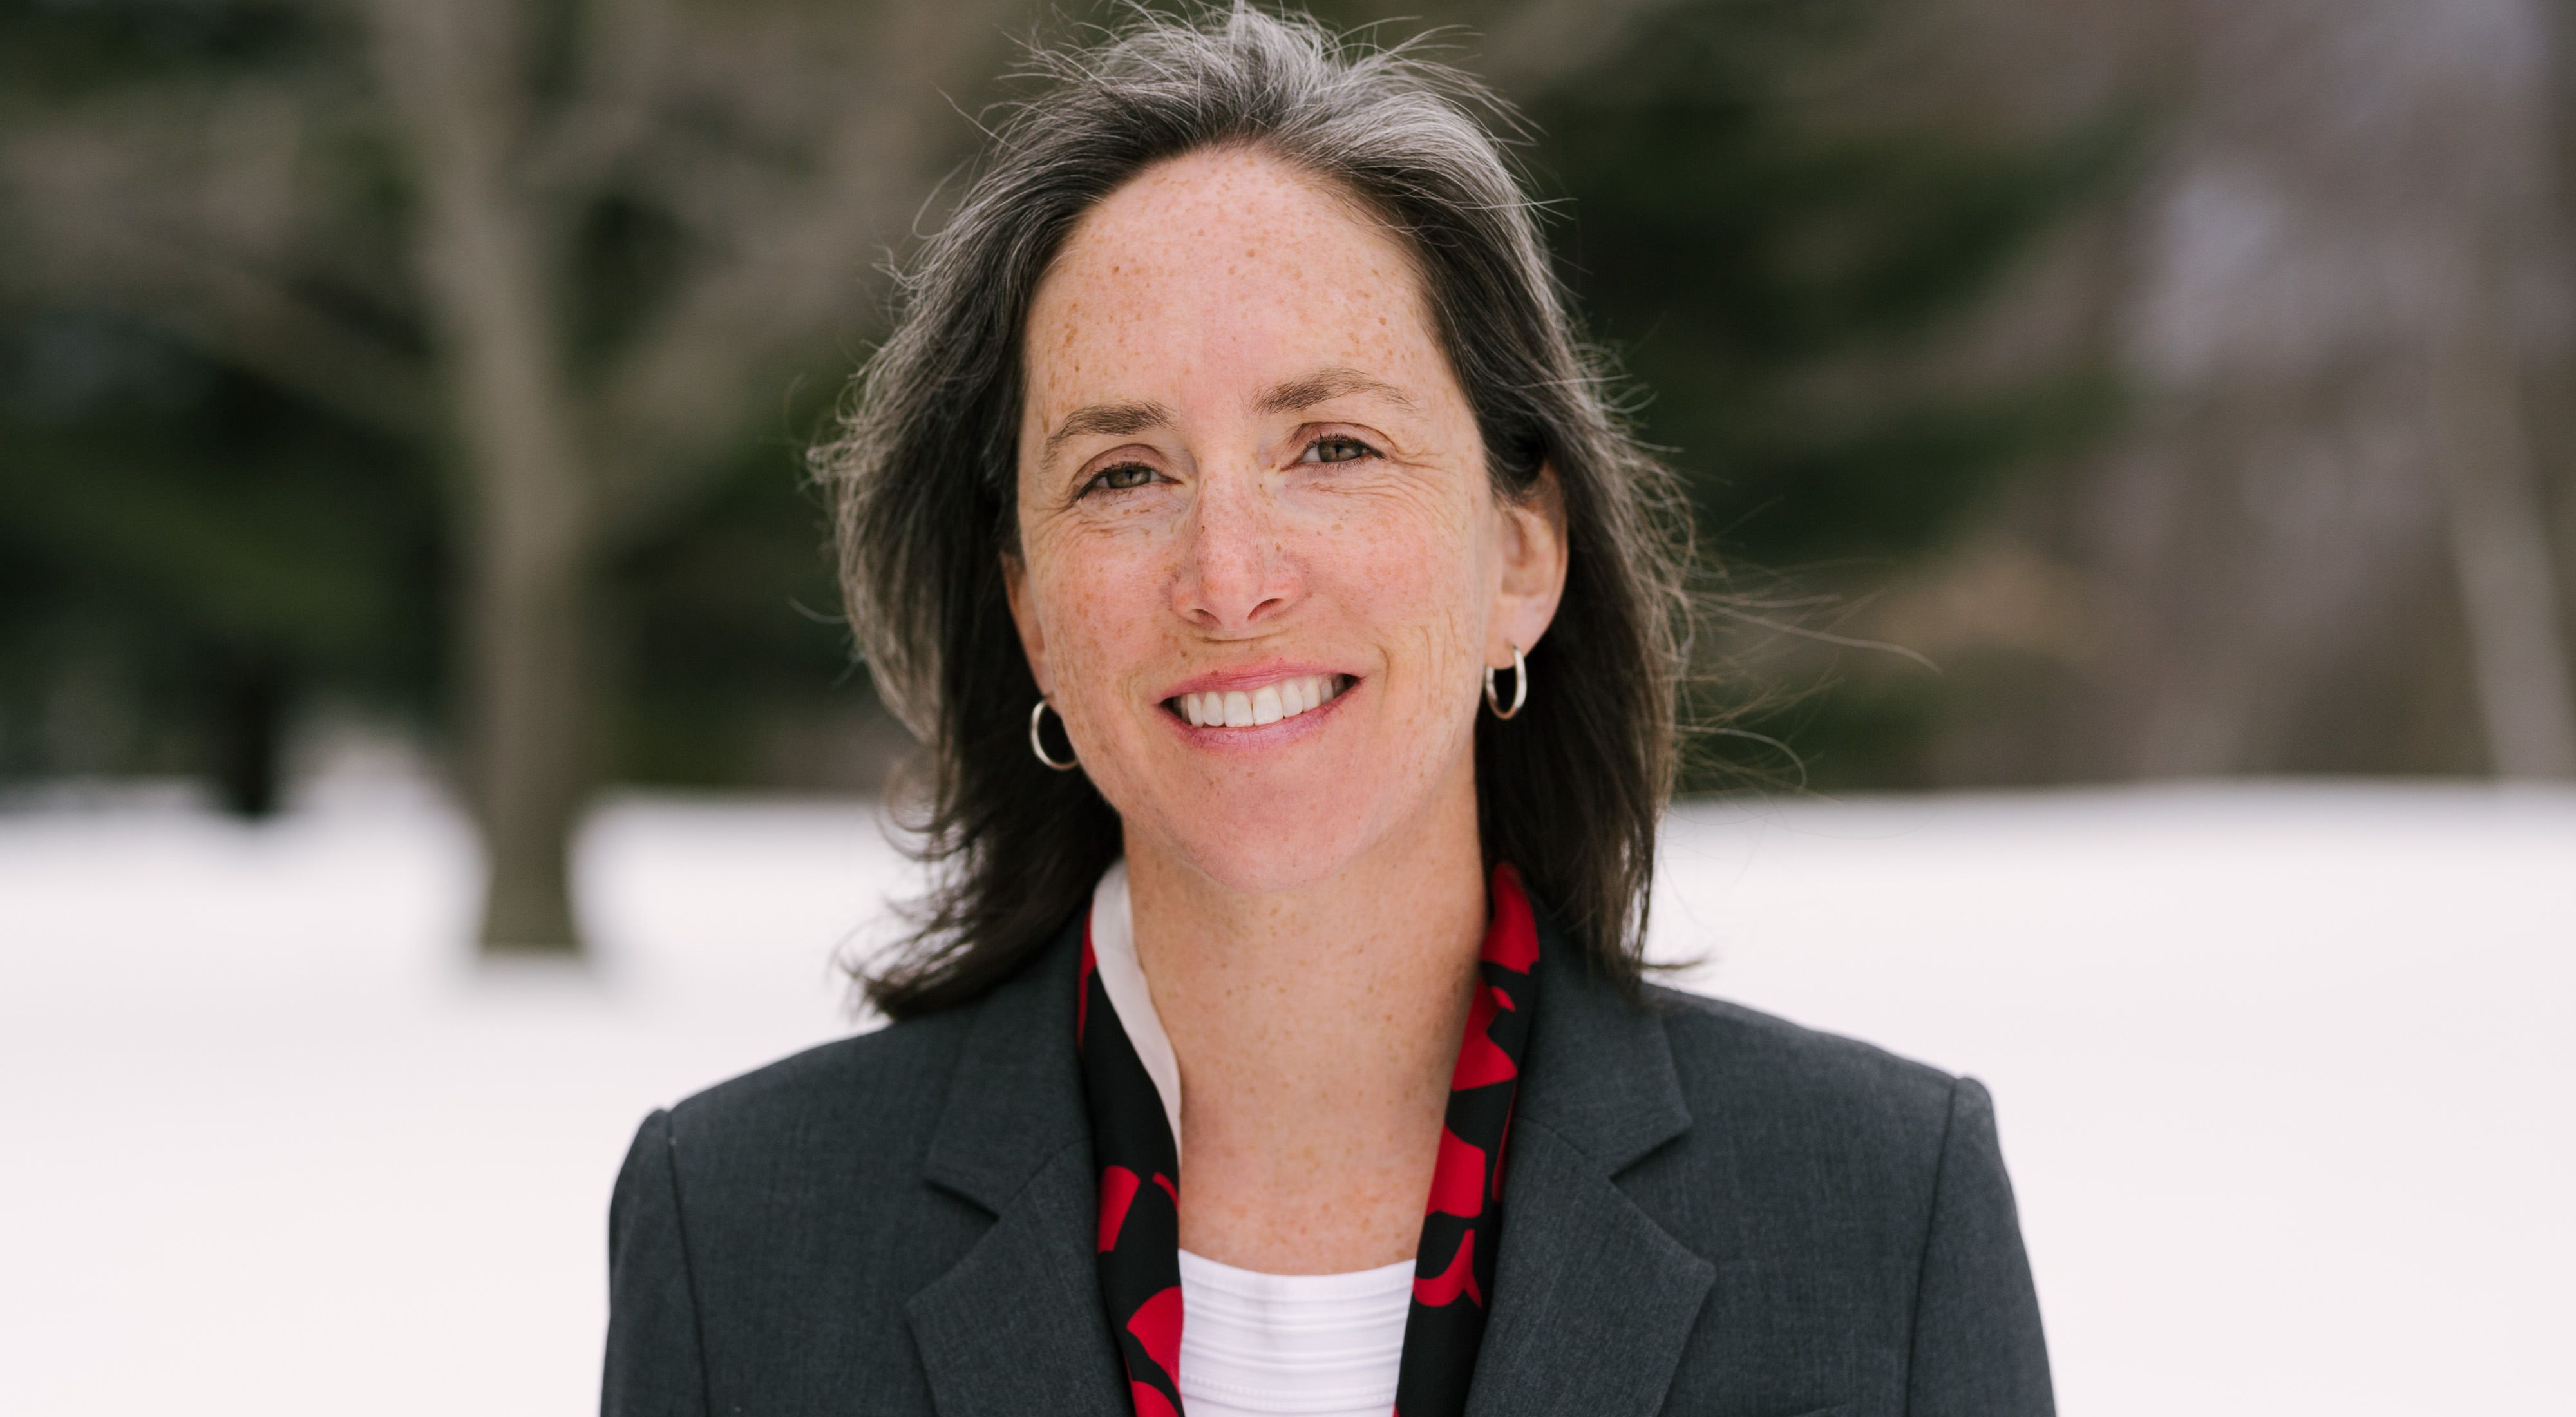 Maine's Director of Science, Samantha Horn